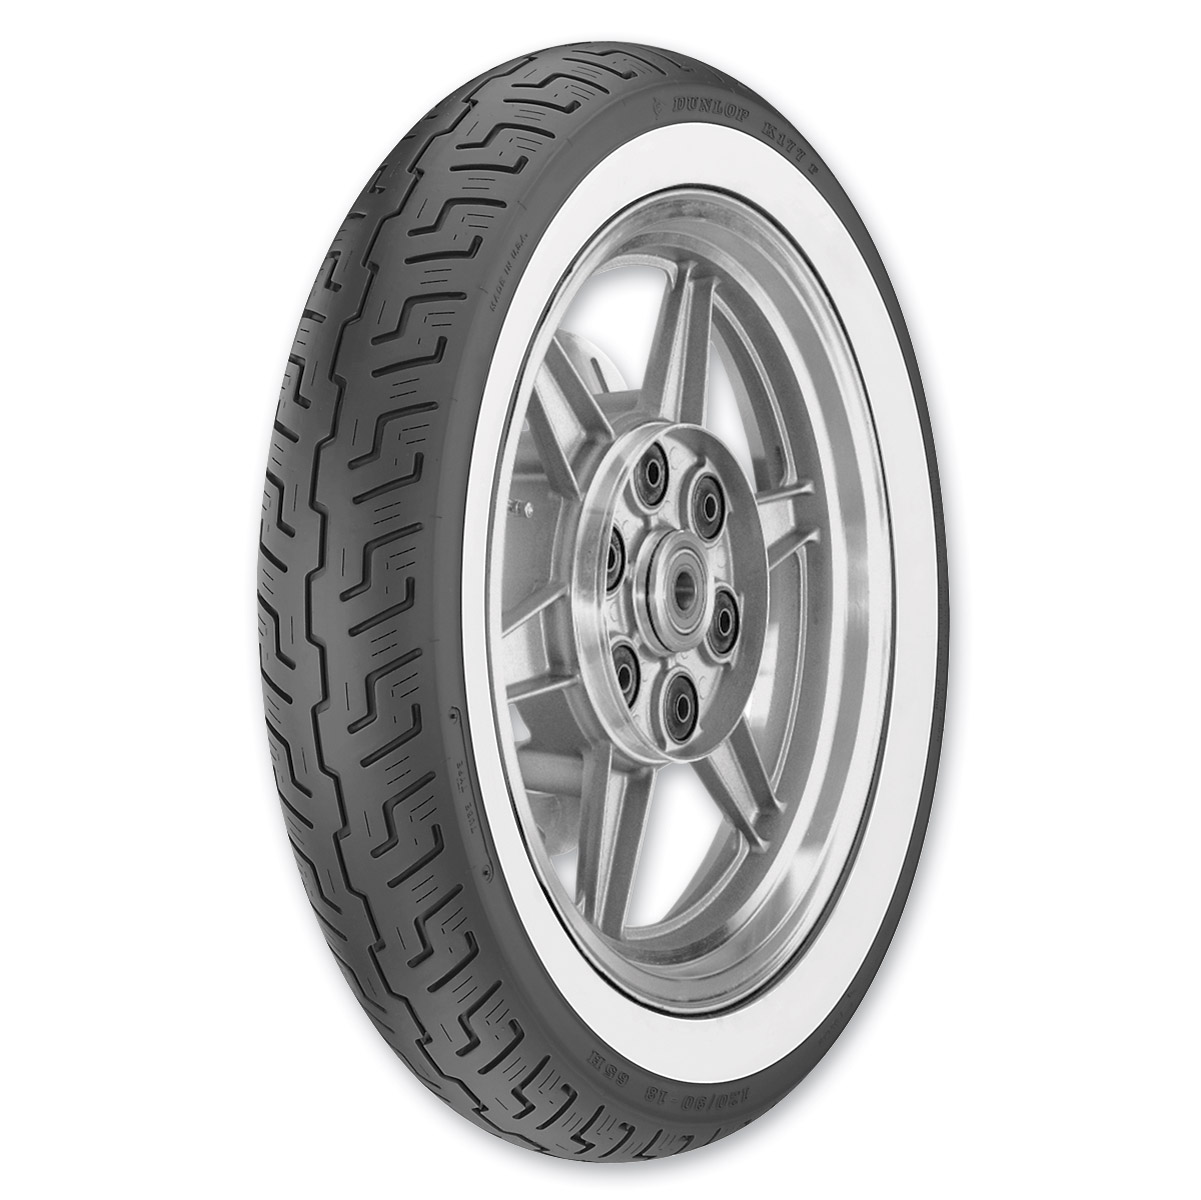 Michelin Whitewall Tires >> Dunlop K177 120 90 18 Wide Whitewall Front Tire 45104656